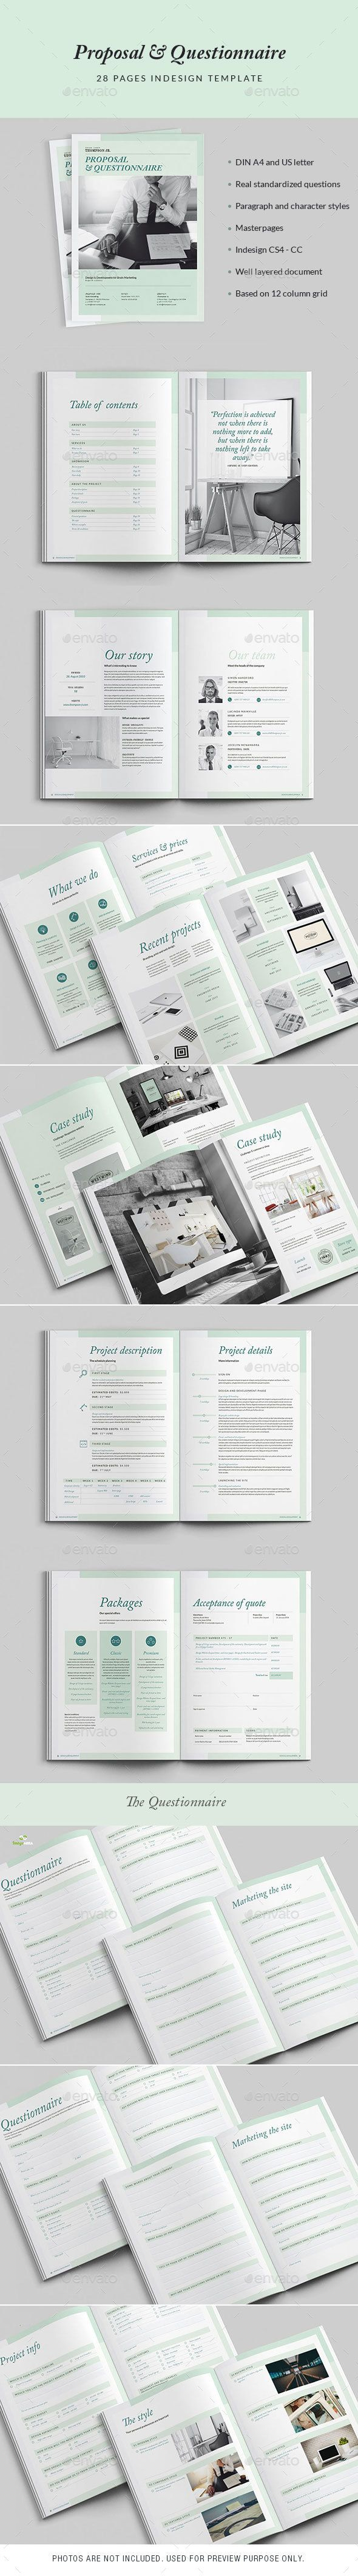 28 Pages Proposal and Questionnaire Template InDesign INDD. Download ...